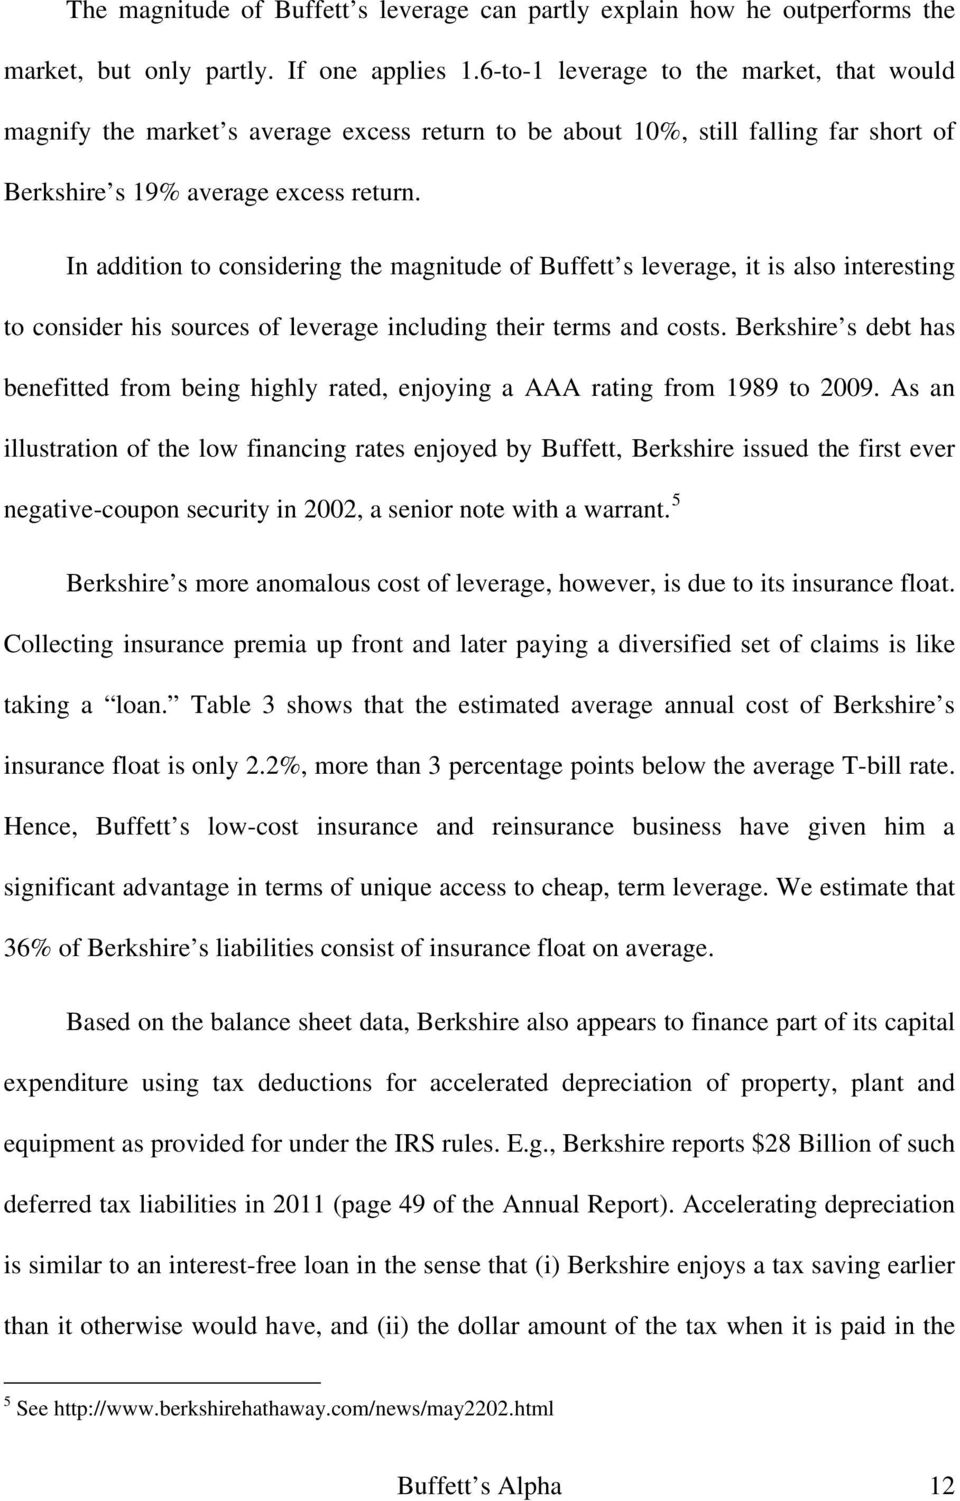 In addition to considering the magnitude of Buffett s leverage, it is also interesting to consider his sources of leverage including their terms and costs.